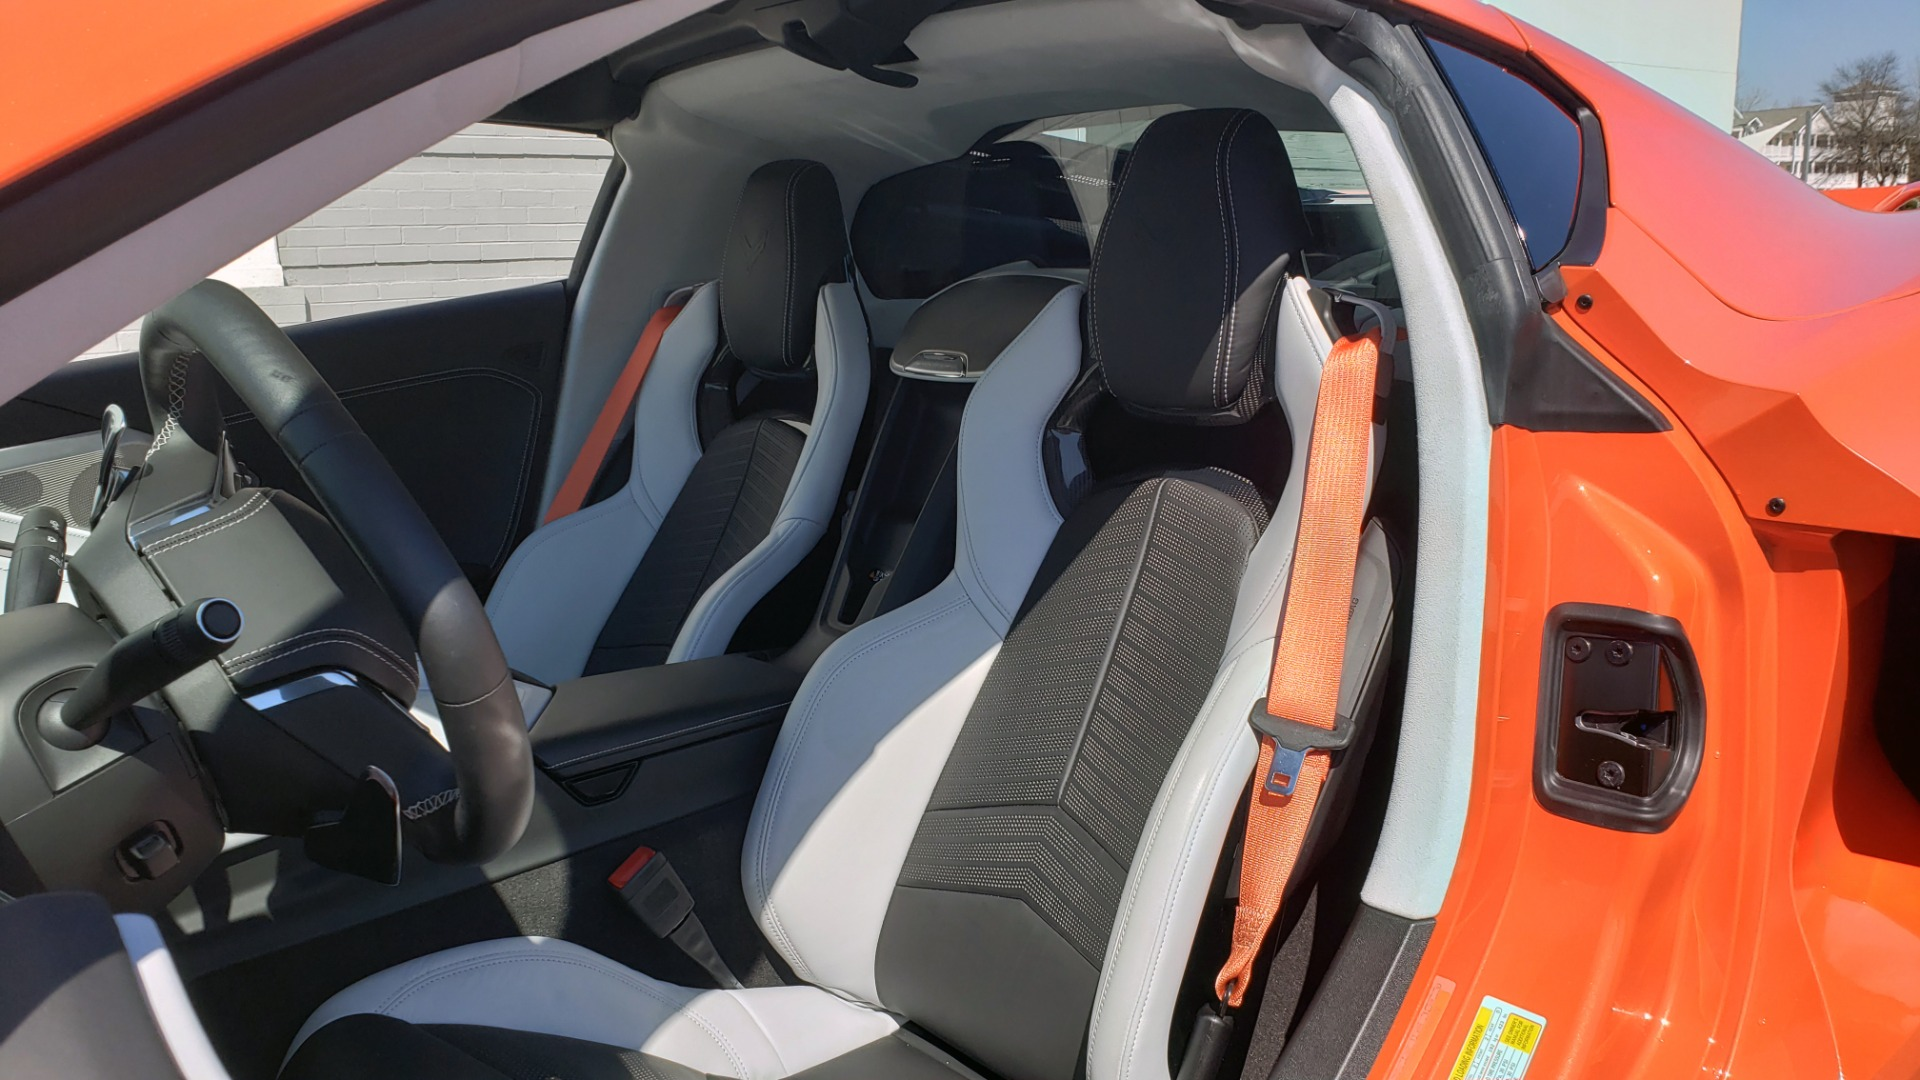 Used 2020 Chevrolet CORVETTE C8 STINGRAY 3LT COUPE / NAV / BOSE / CAMERA / LIKE NEW for sale Sold at Formula Imports in Charlotte NC 28227 14